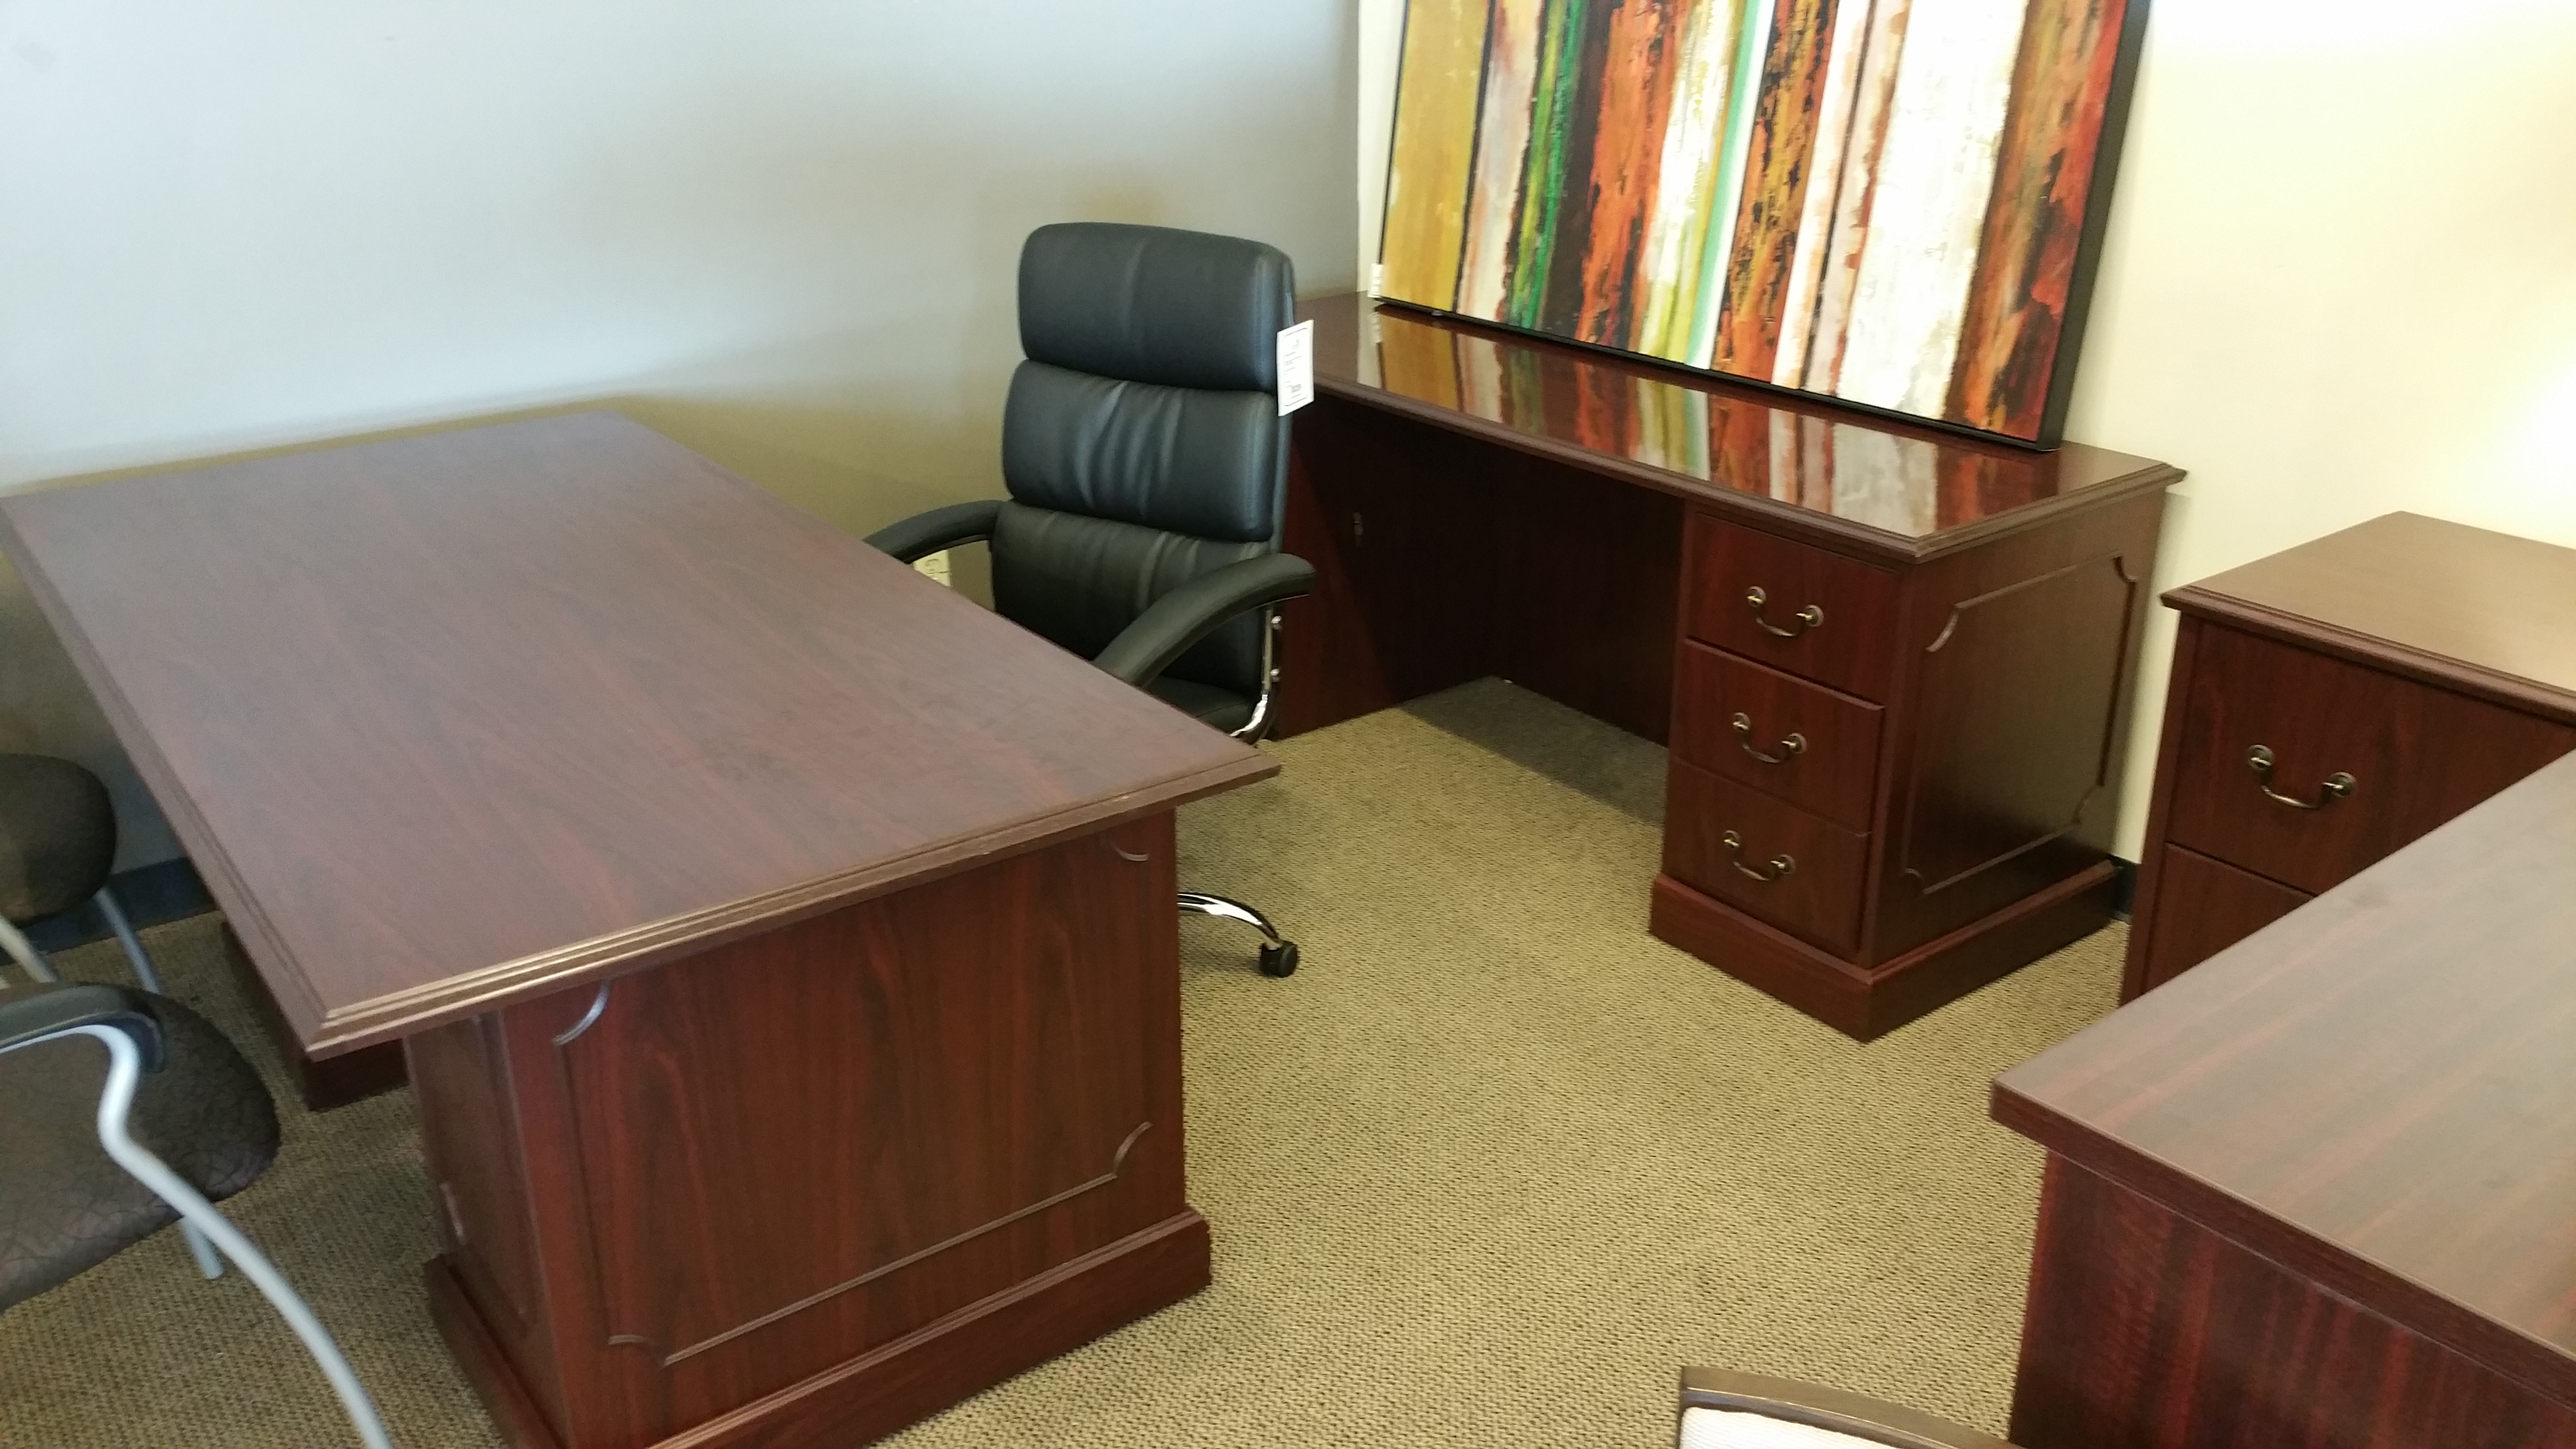 Beautiful Pre Owned Hon Traditional Desk And Credenza Set In Espresso Finish The Feature 2 File Box Pedestals Each For Plenty Of Filing